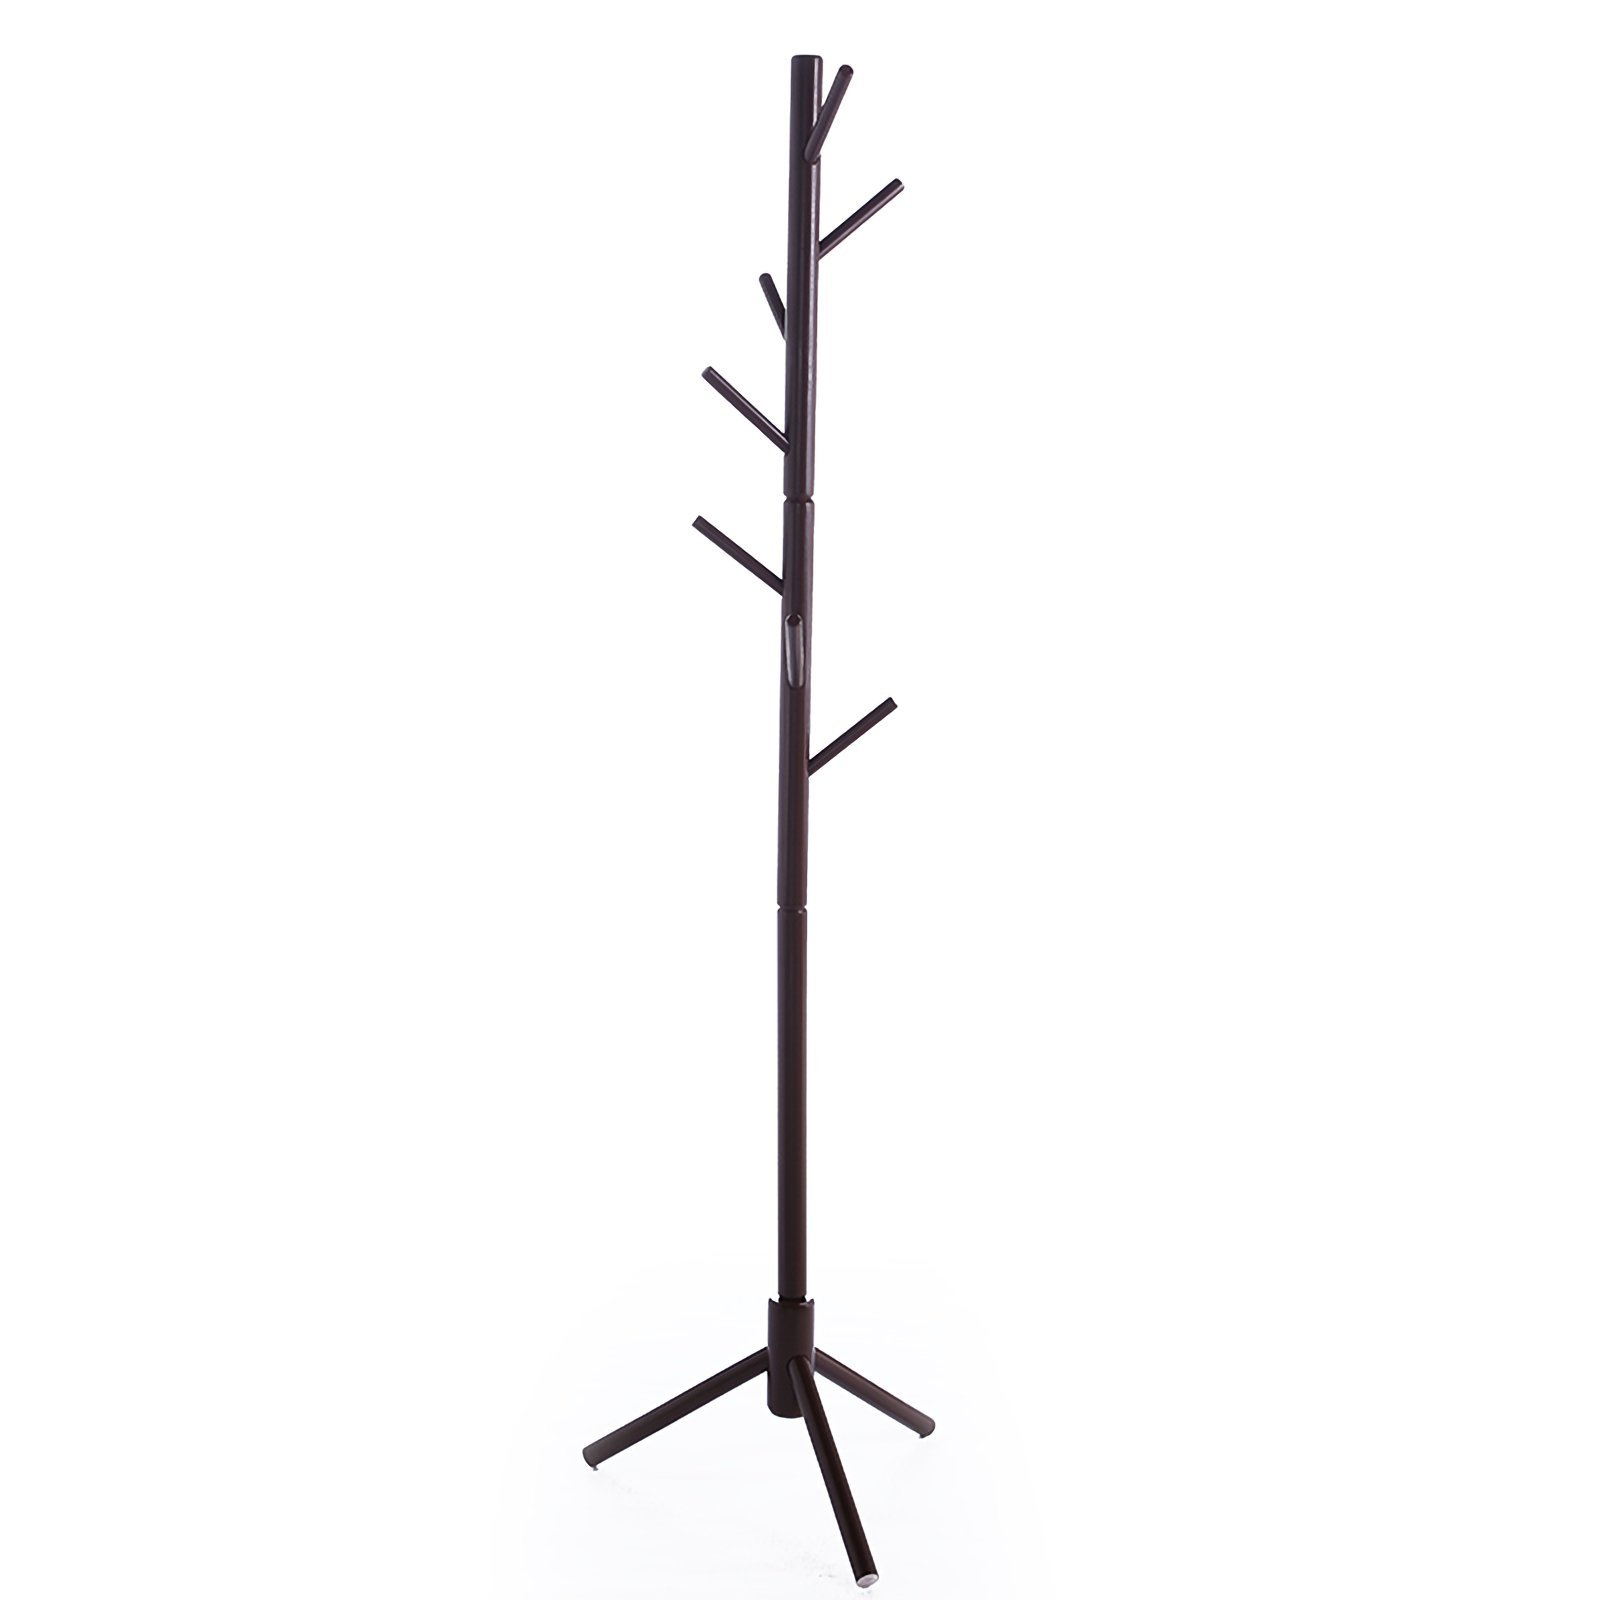 JOYBASE 8 hooks Wooden Coat Rack/Clothes Hanger Stand, for Coats, Hats, Scarves, Jacket and Handbags(Coffee) by JOYBASE (Image #2)